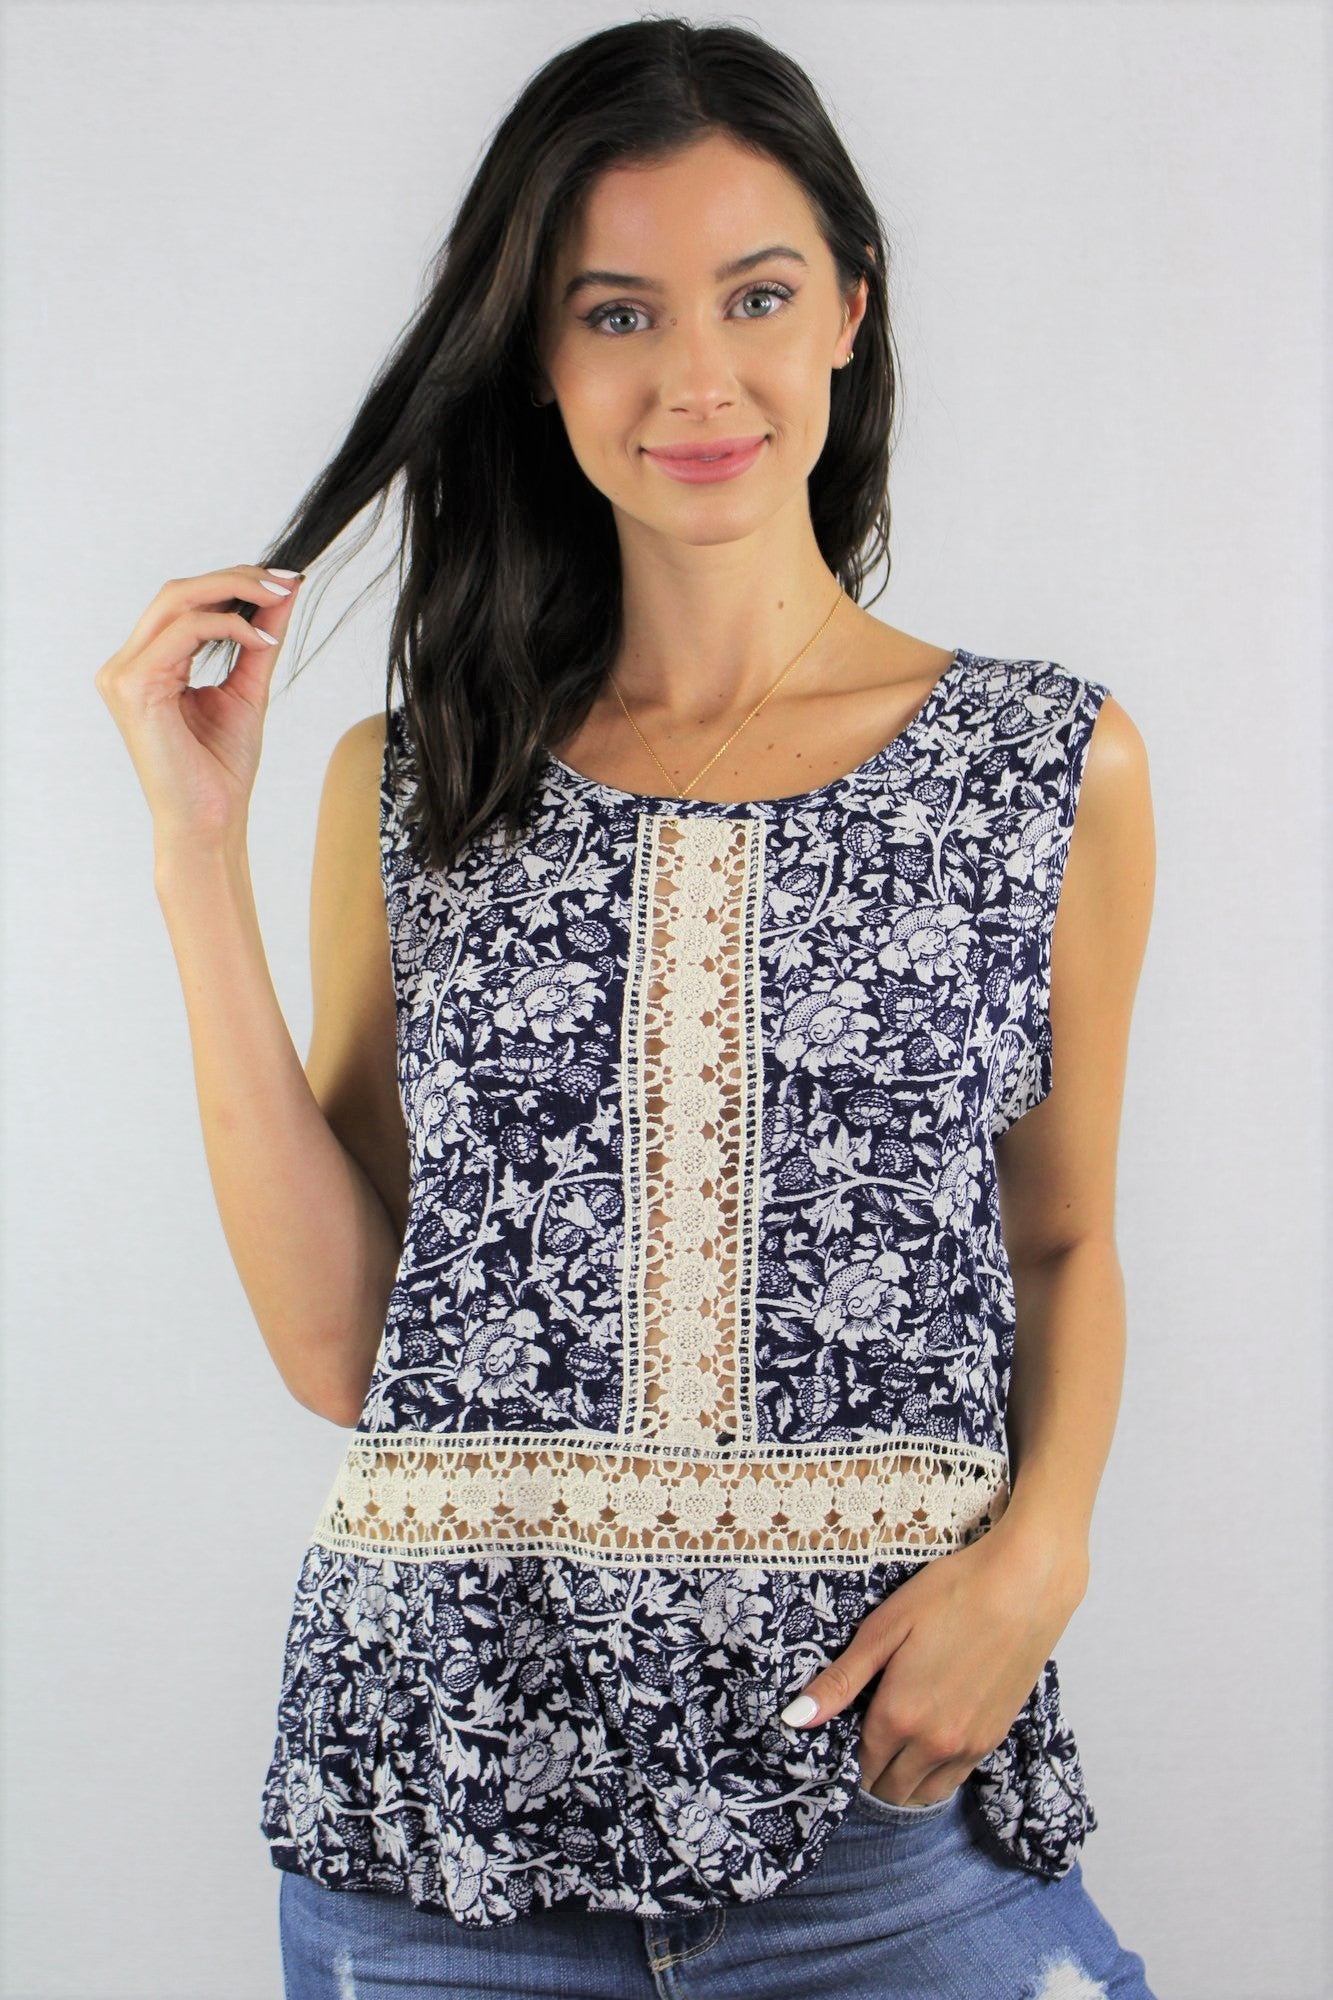 New Women's Boutique Sleeveless Top with Crochet Detail S, M, L, XL